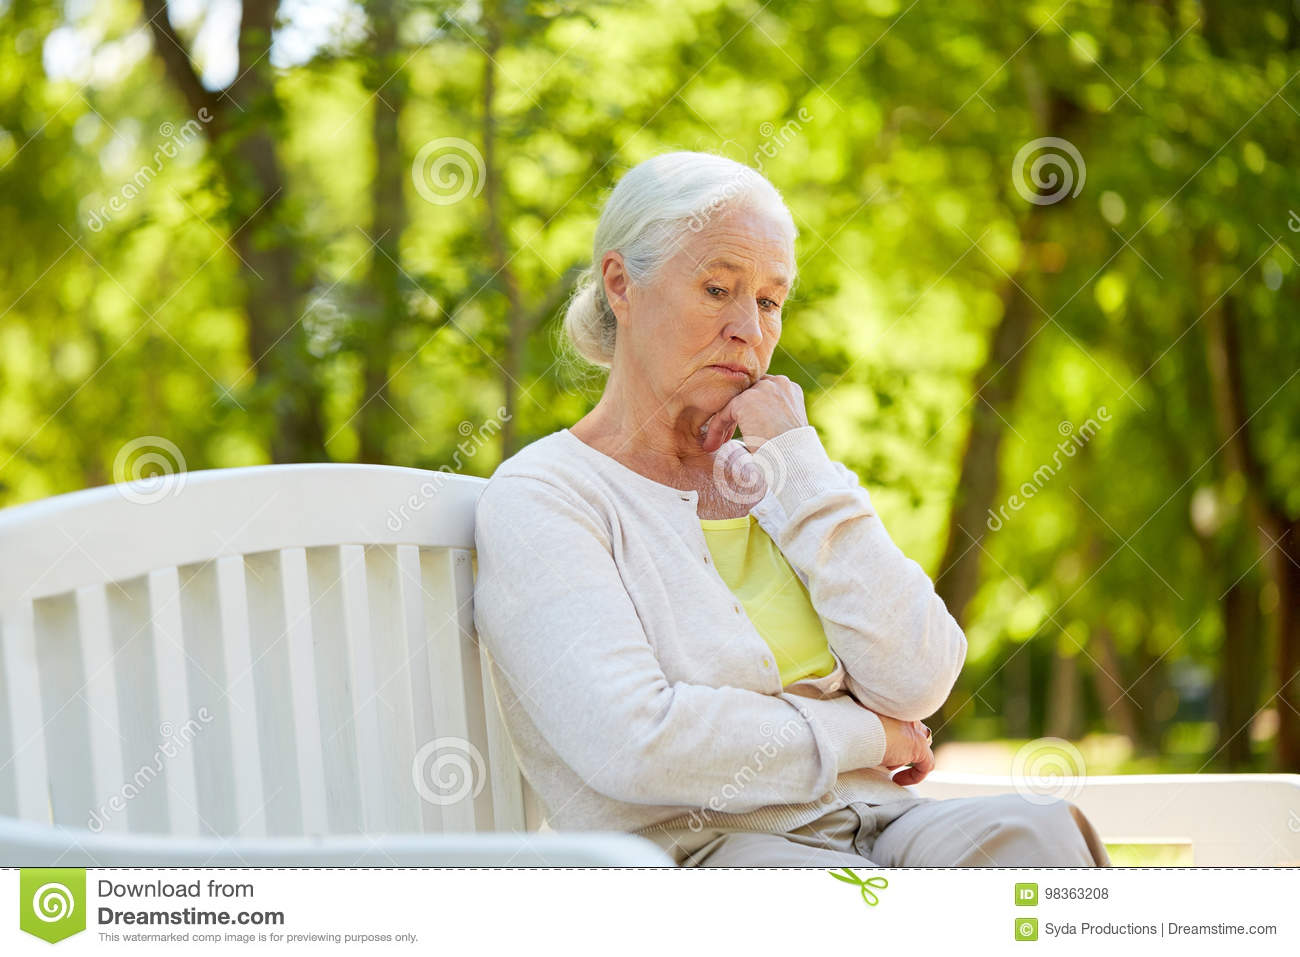 Image of: Room Old Age Retirement And People Concept Sad Senior Woman In Glasses Sitting On Bench At Summer Park Dreamstimecom Sad Senior Woman Sitting On Bench At Summer Park Stock Photo Image